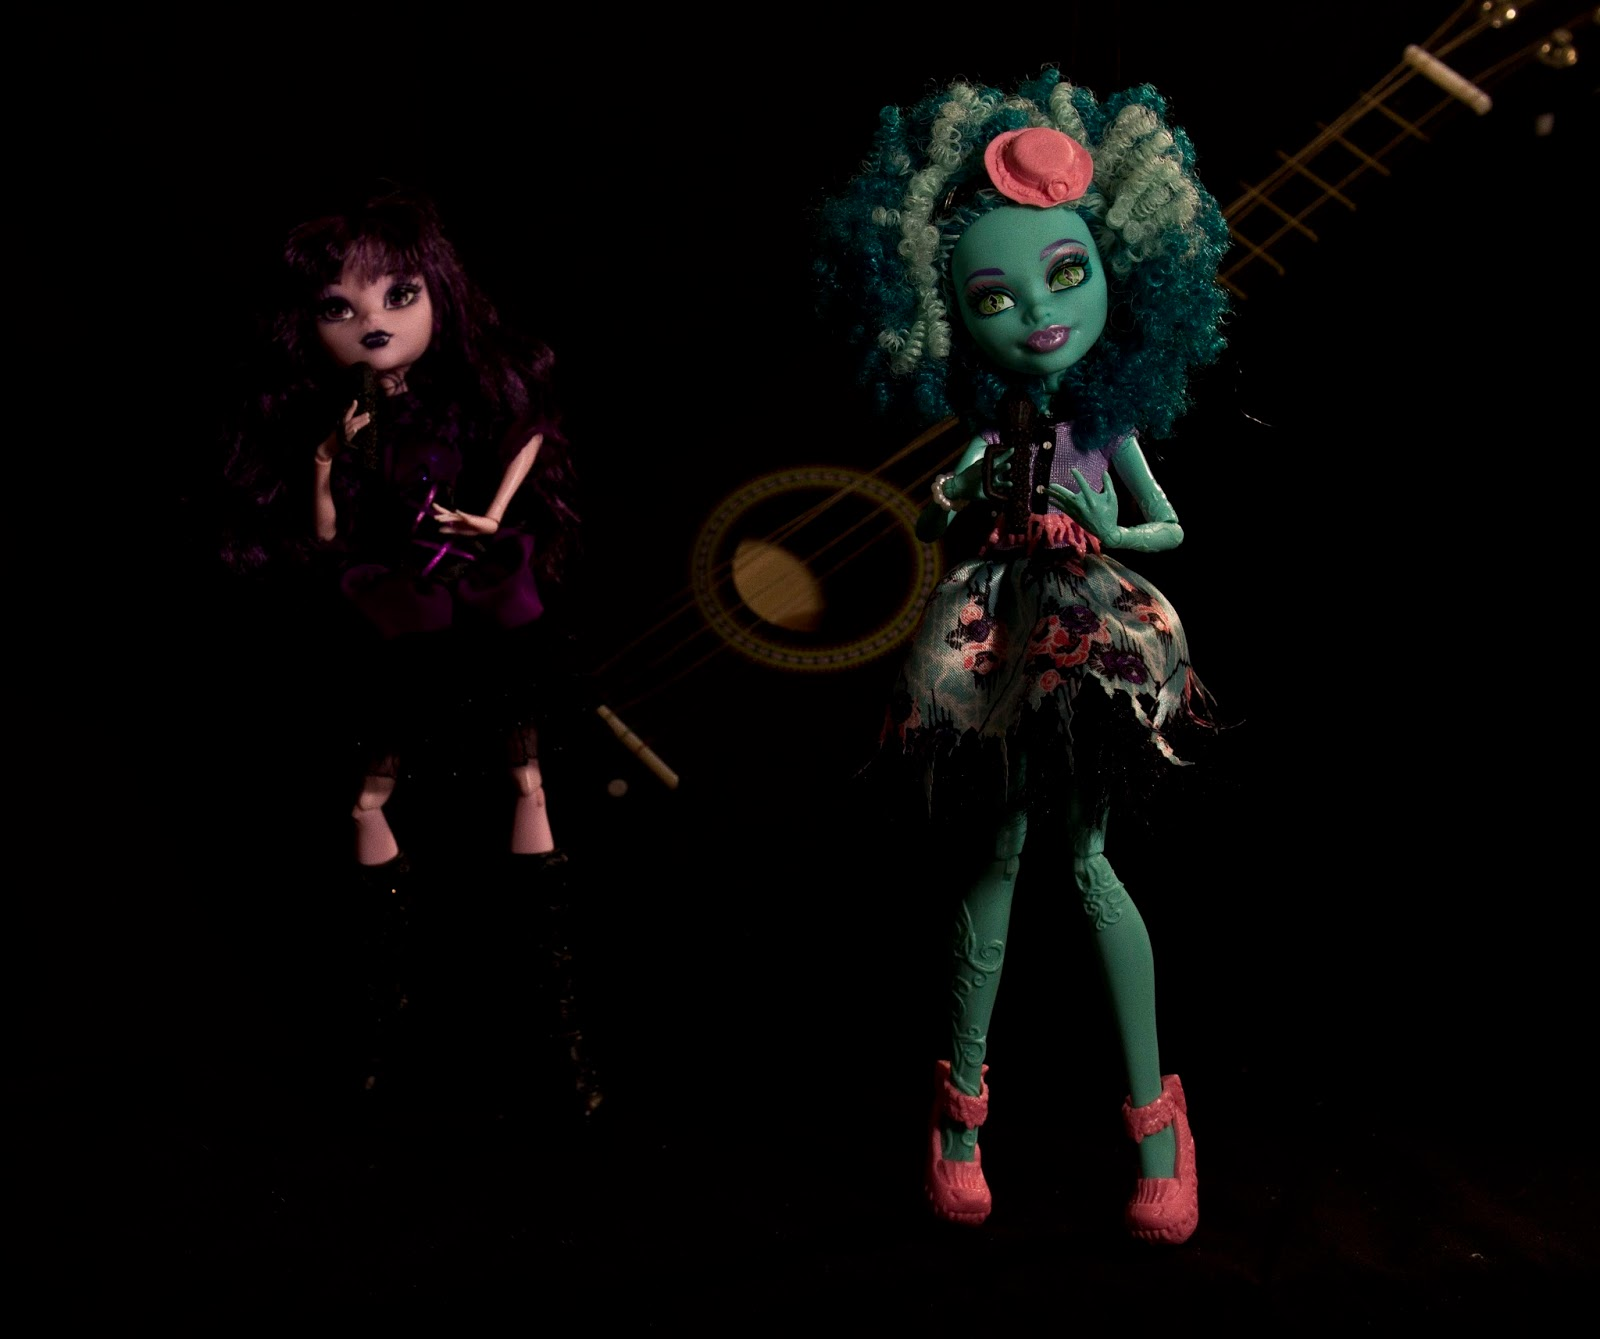 dolls in photography studio posing in a live concert